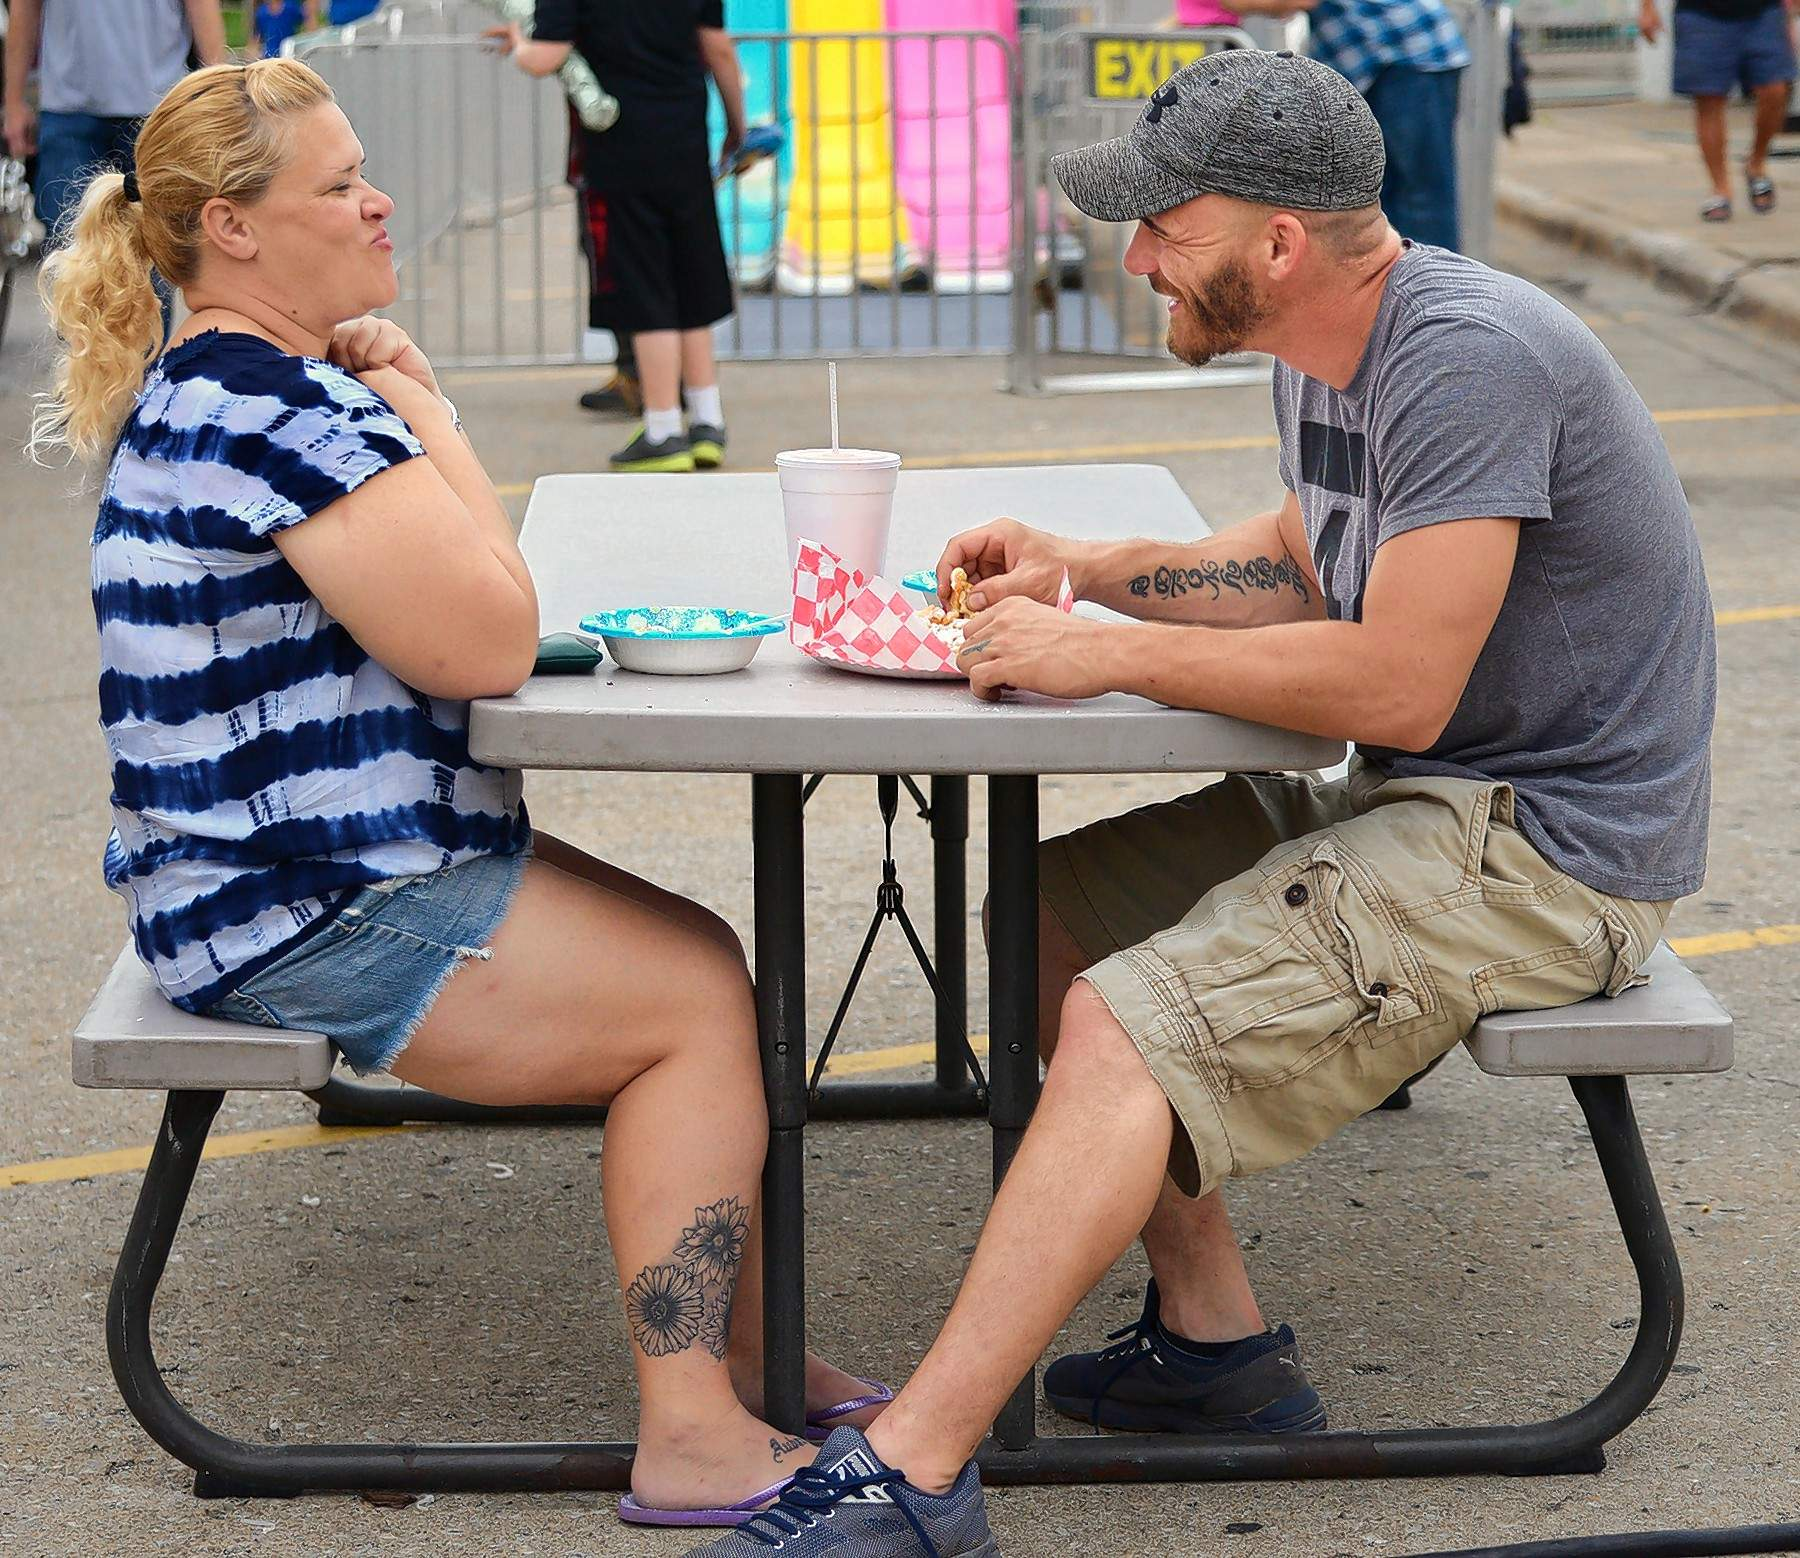 Brandon McReynolds and Christy Jasper chose a visit to the Rend Lake Water Festival carnival this past weekendto help celebrate two years of going together.The Benton couple shared some tasty carnival food before enjoying some of the rides on the midway.Asked which ride he would be trying, McReynolds replied, 'Any one she wants to!'